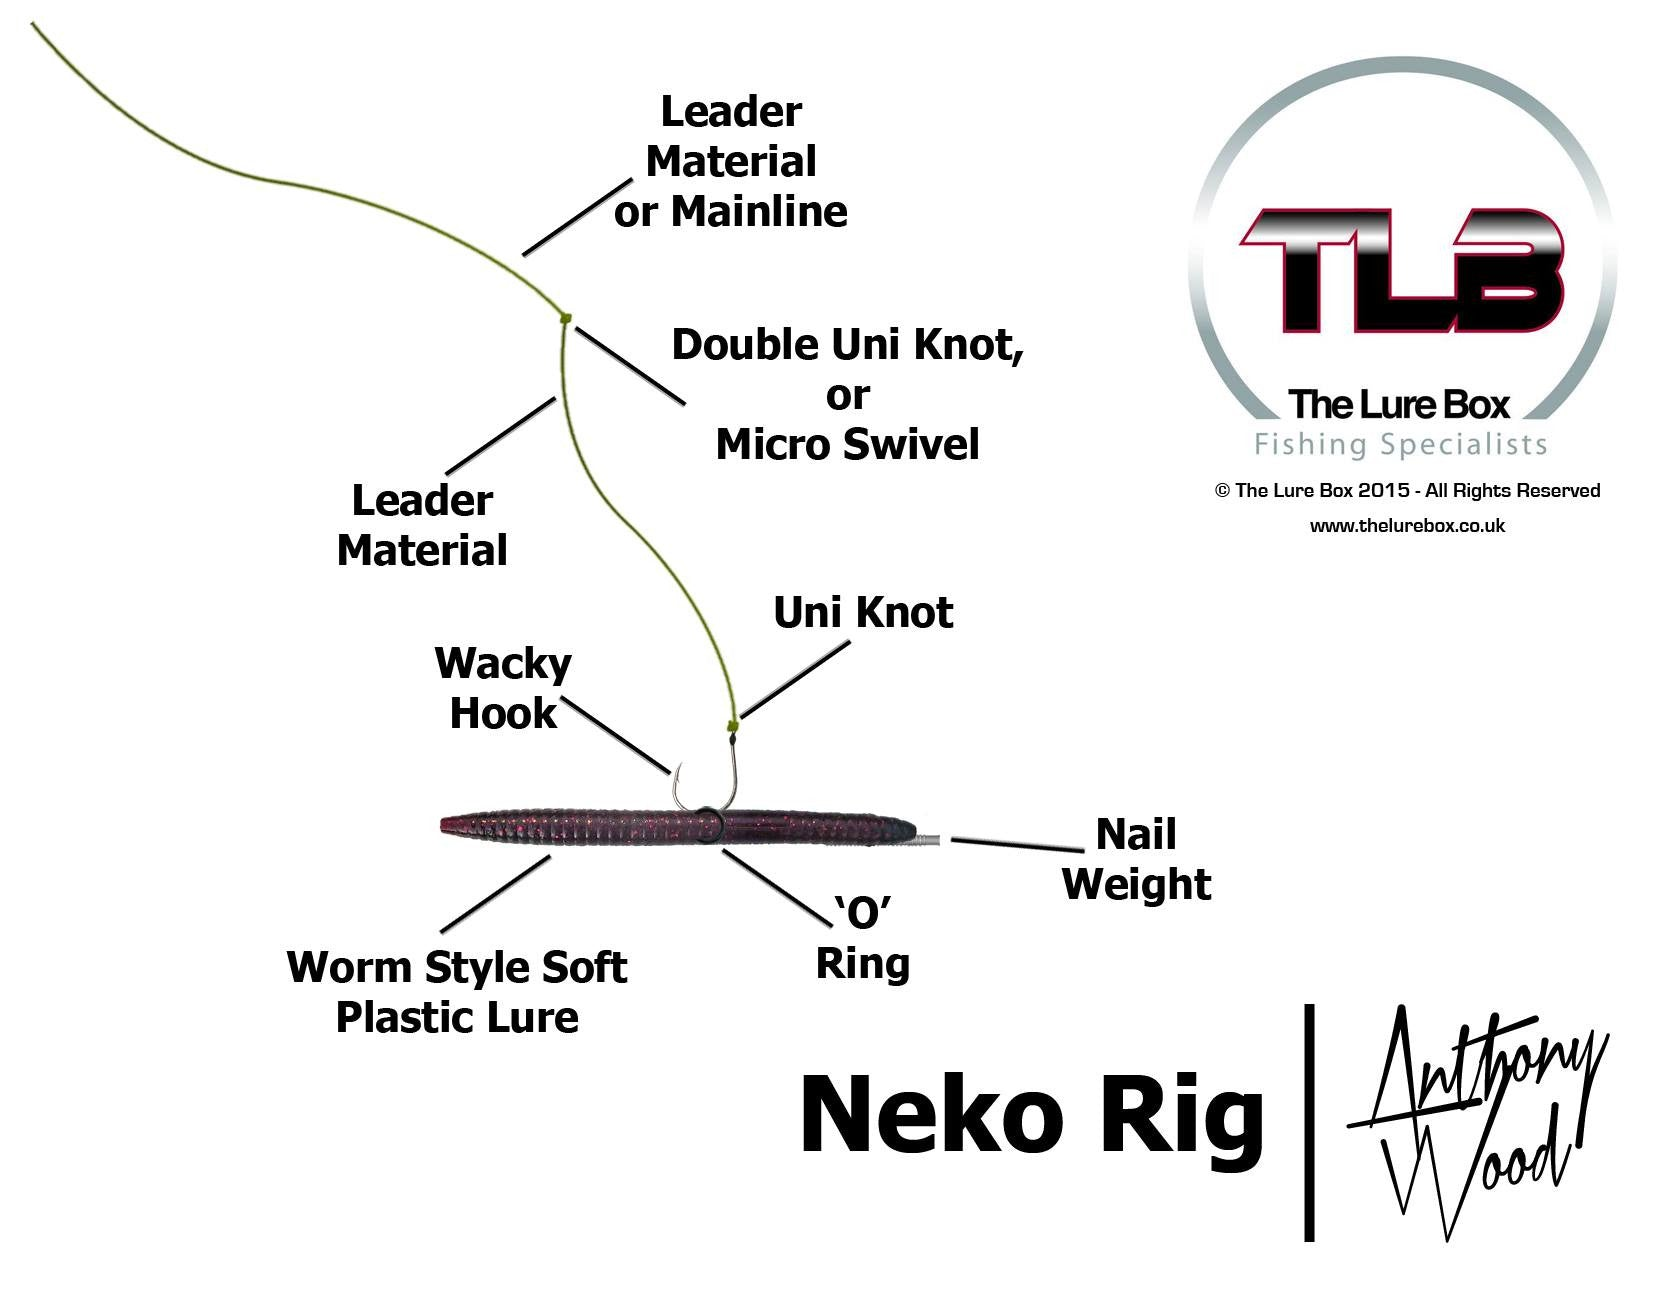 Neko Rig Diagram - The Lure Box